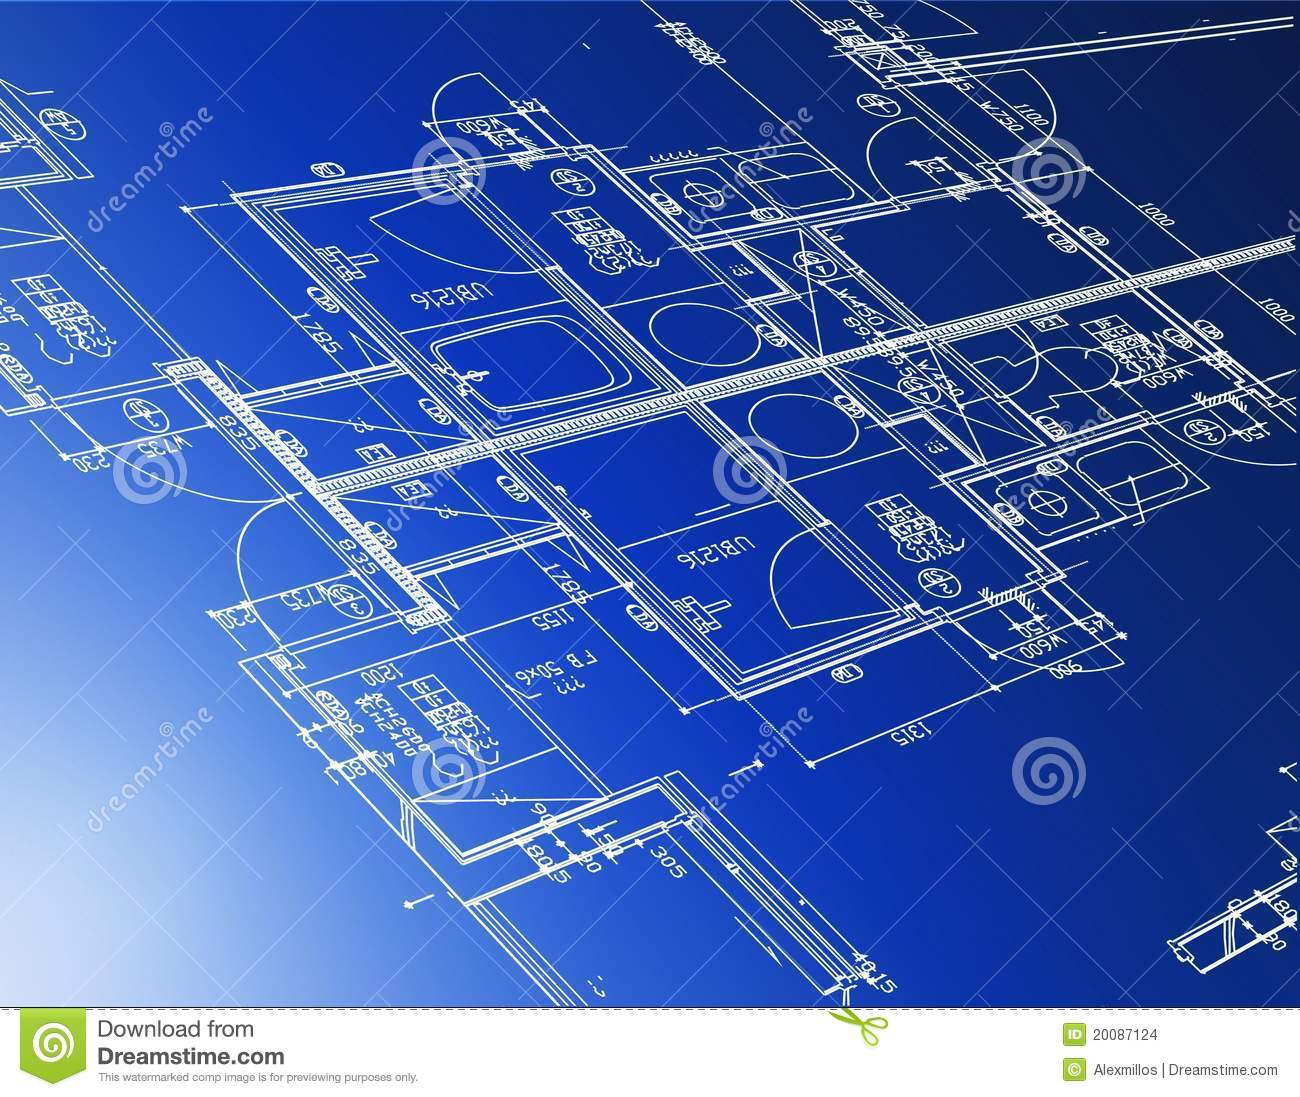 Architectural blueprints stock vector illustration of engineering architectural blueprints malvernweather